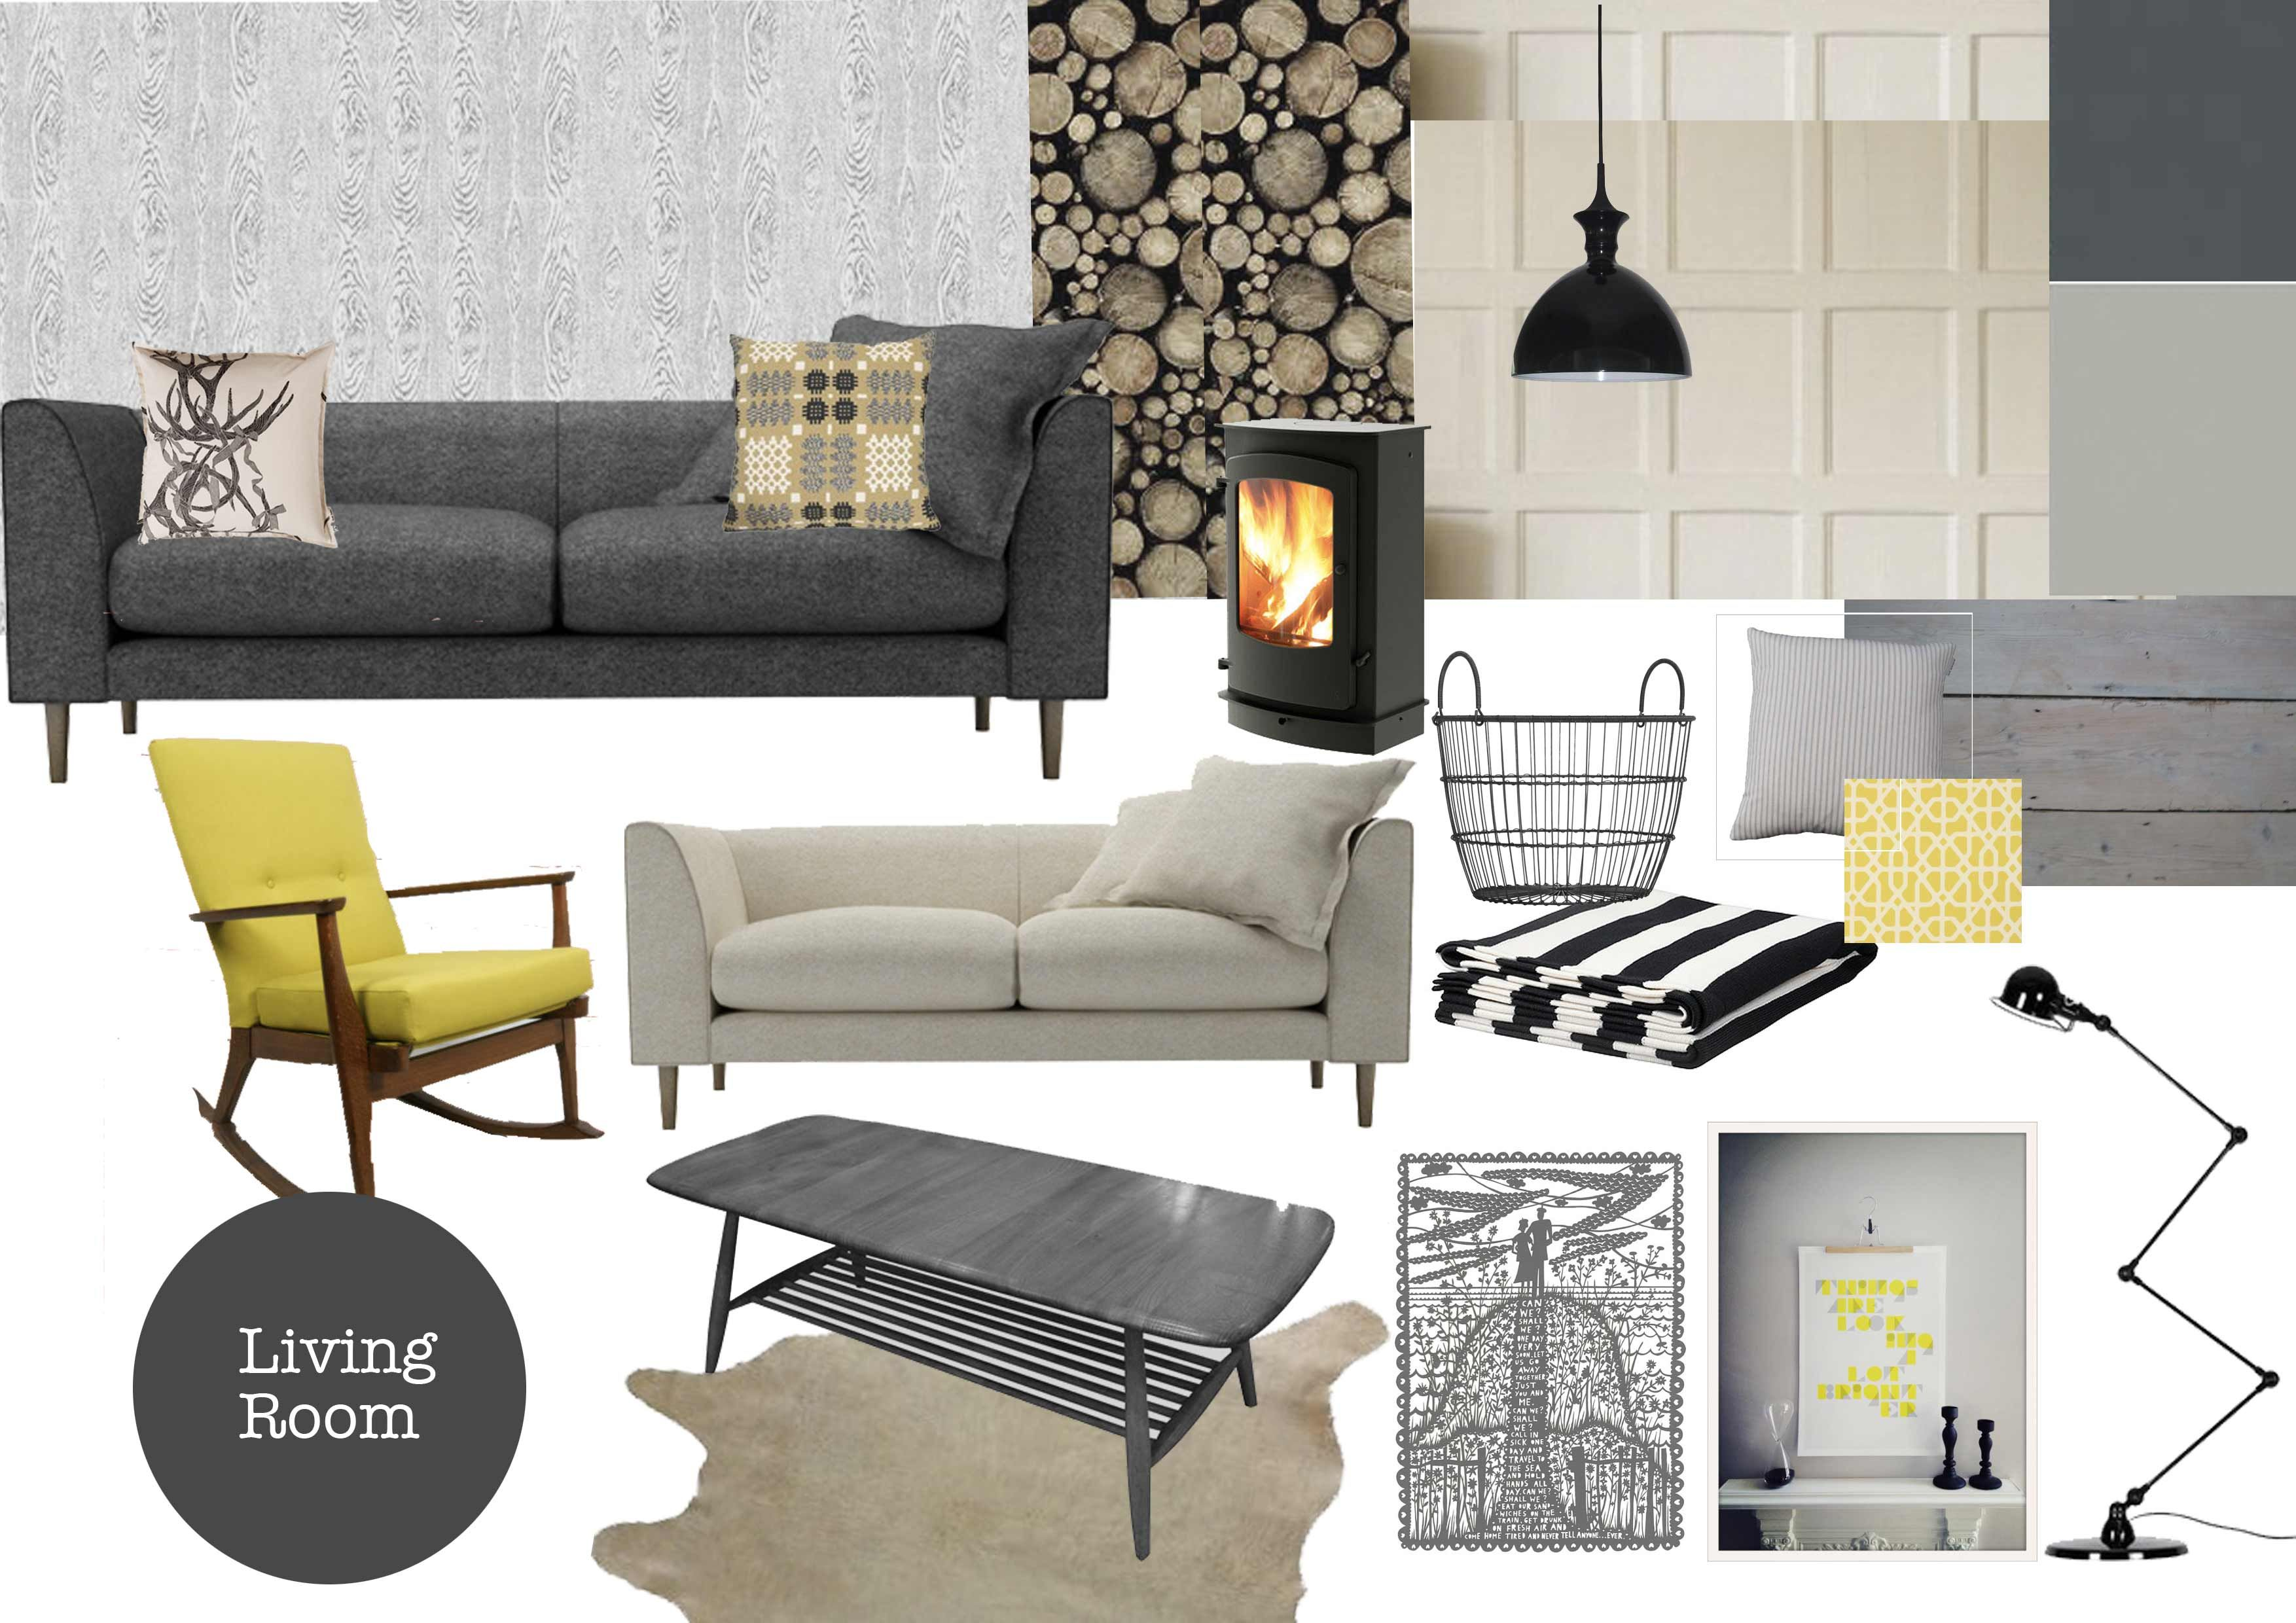 Warm And Cozy Dining Room Moodboard: Plans For The Living Room